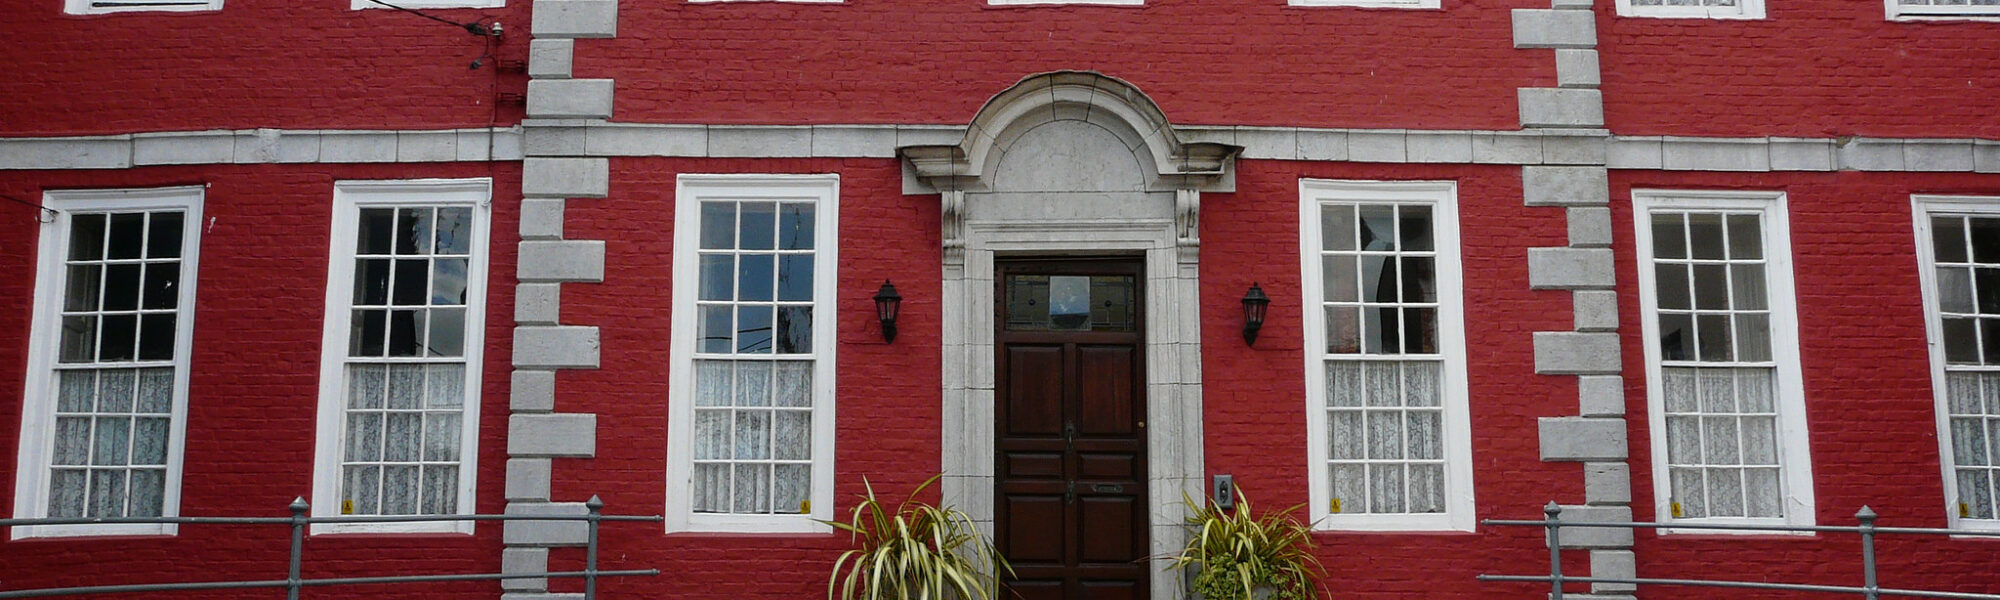 La Red House de Youghal - Jane Nearing - cc